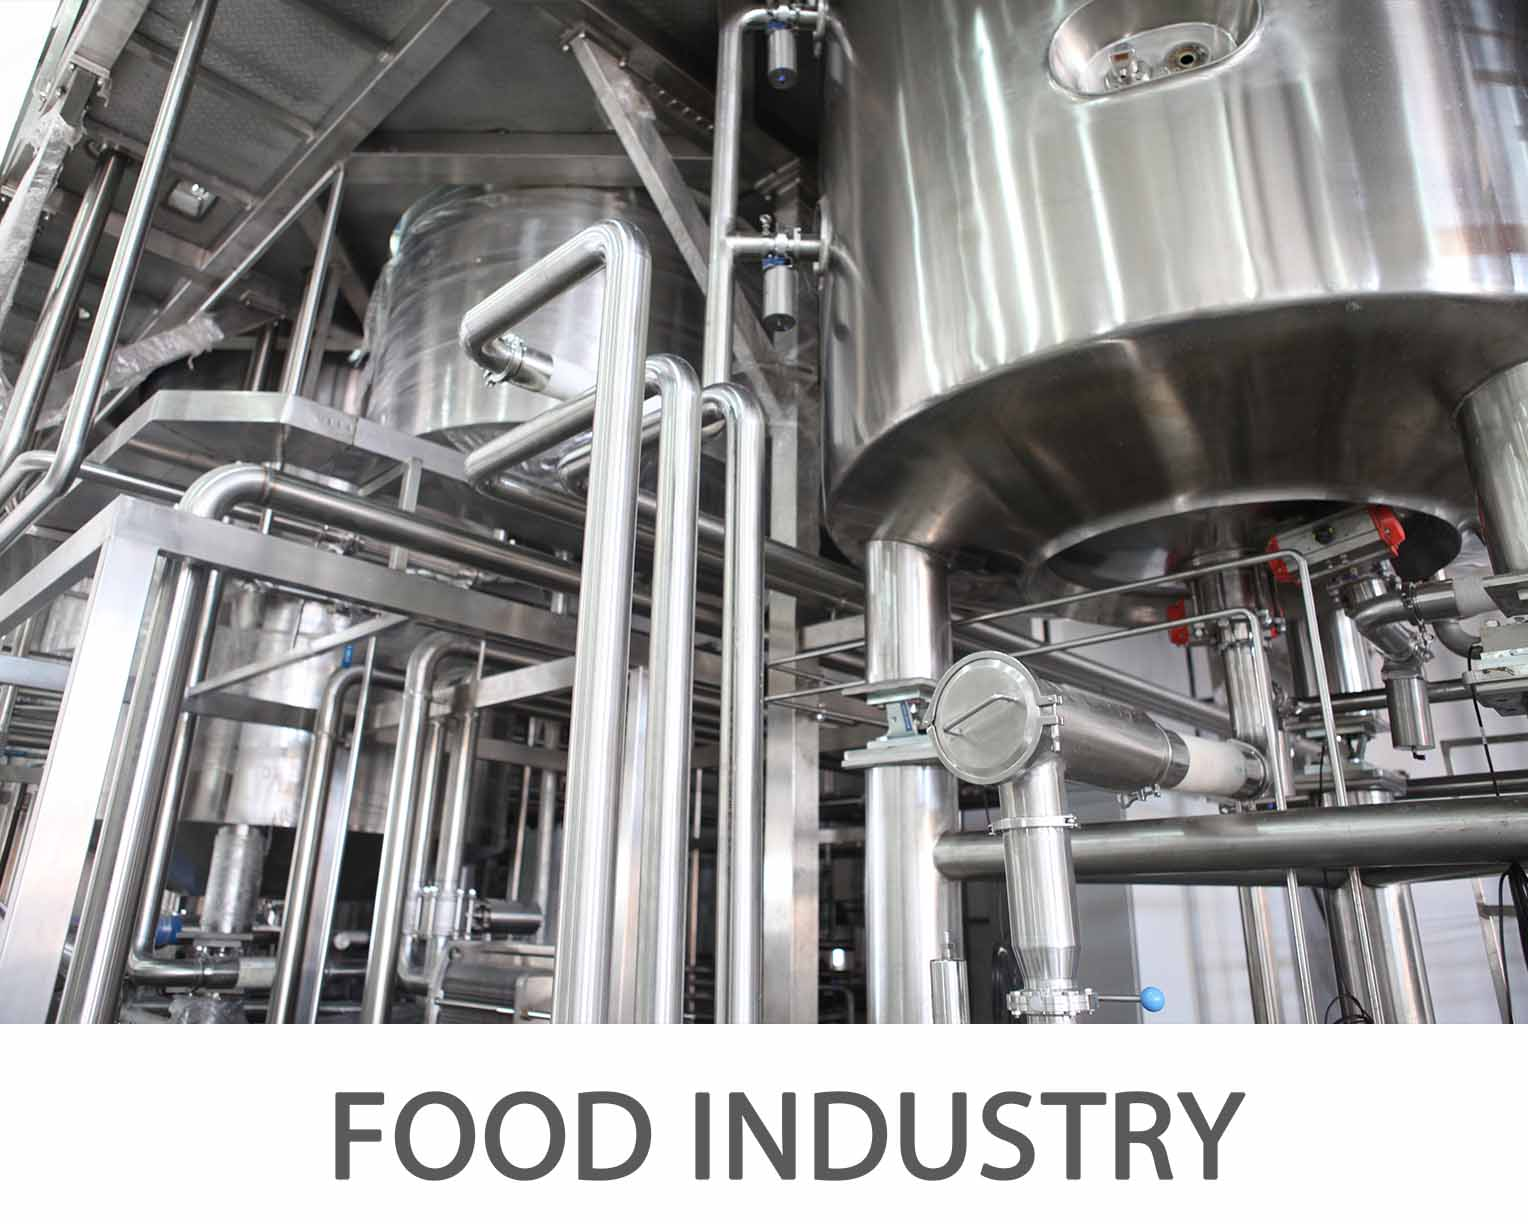 Parts for Food Industry